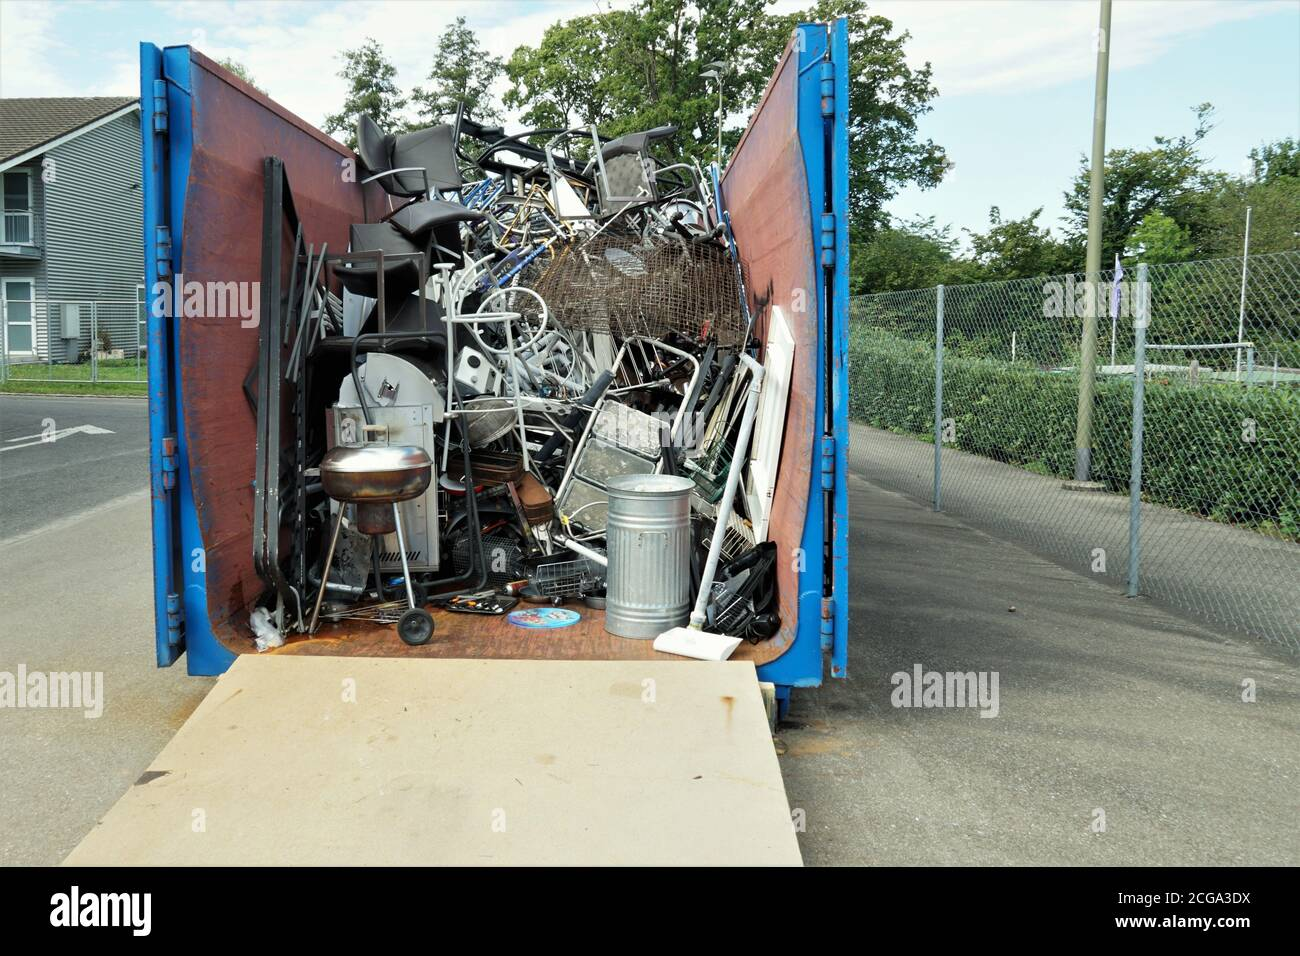 Metal waste collected in a container in a community disposal place. A public service free of charge to prevent littering the environment. Stock Photo